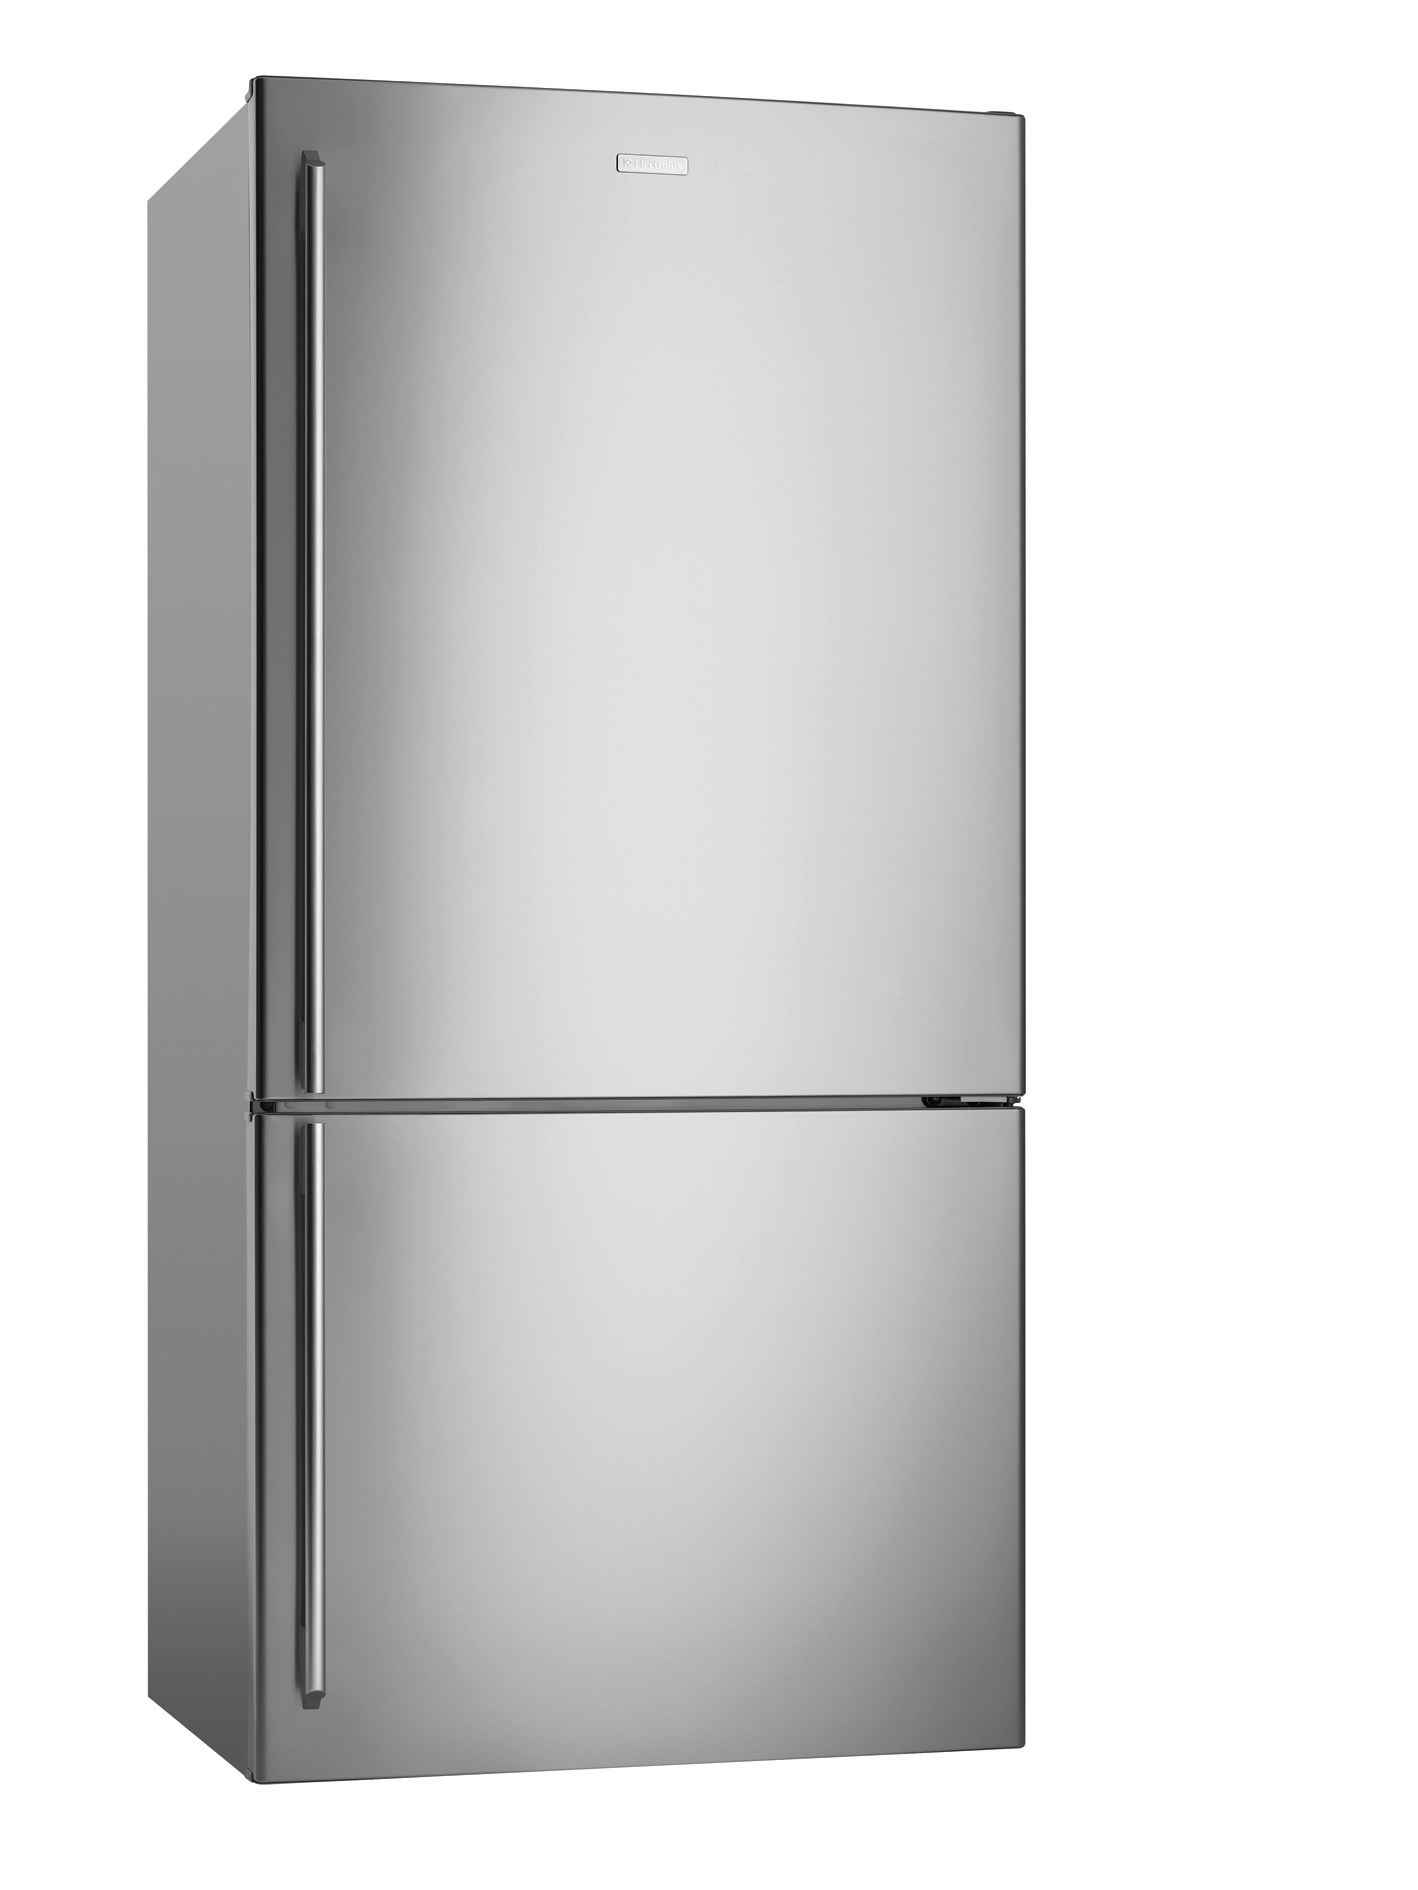 electrolux kitchen refrigerator ideas. Black Bedroom Furniture Sets. Home Design Ideas